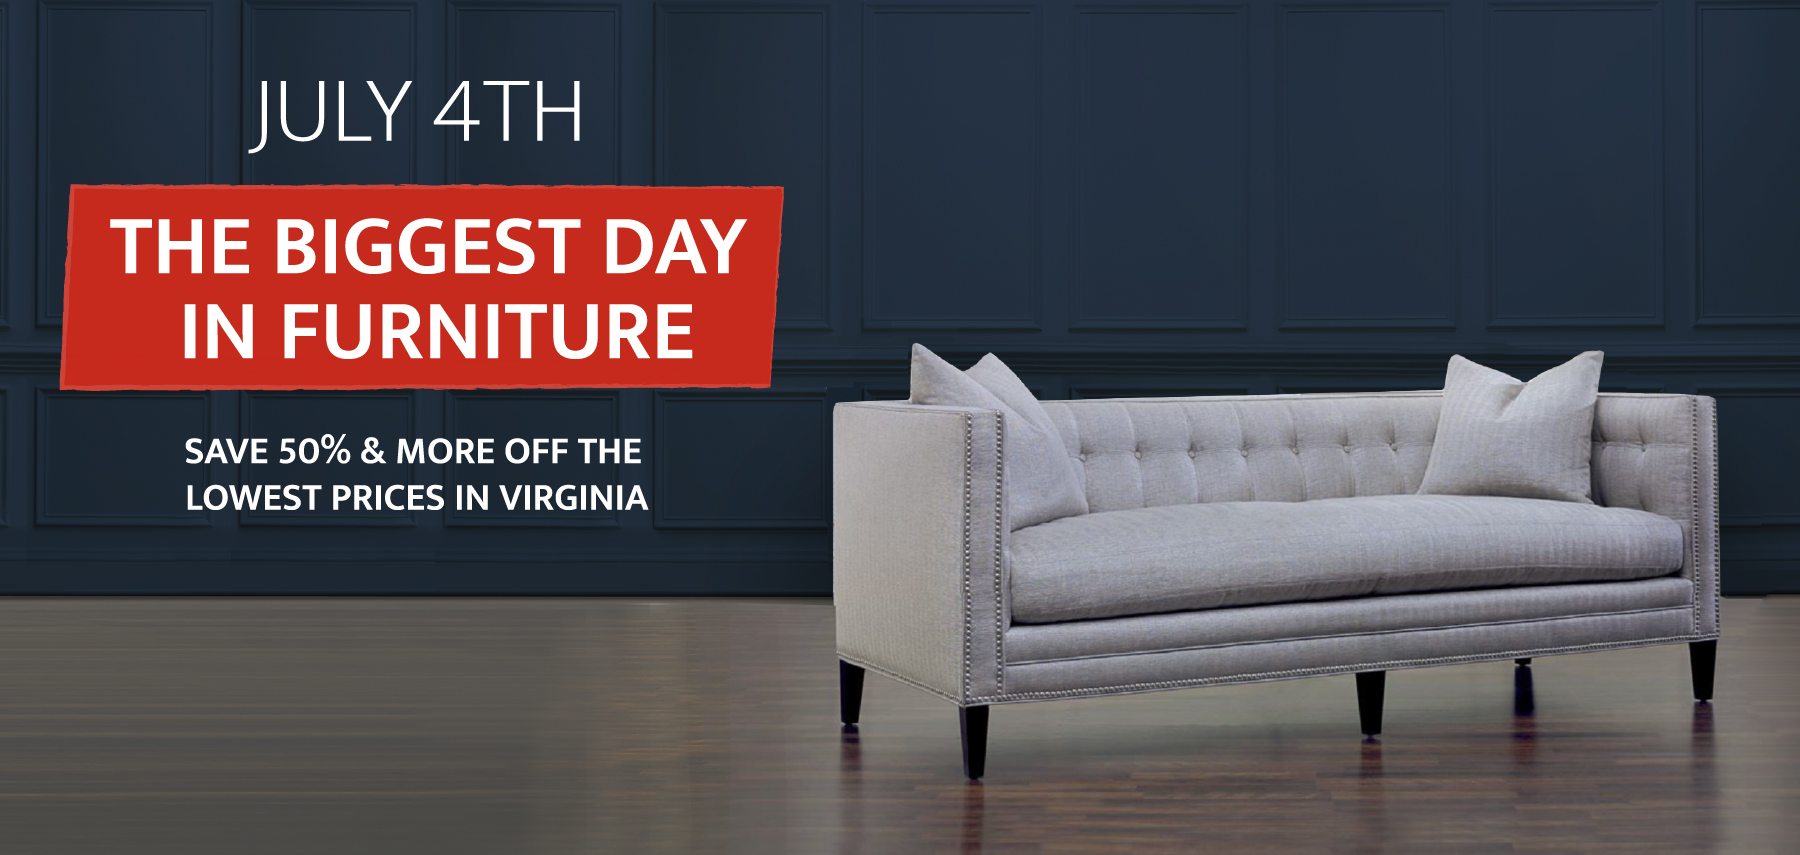 July 4th - The Biggest Day in Furniture - SAve 50% & More OFF